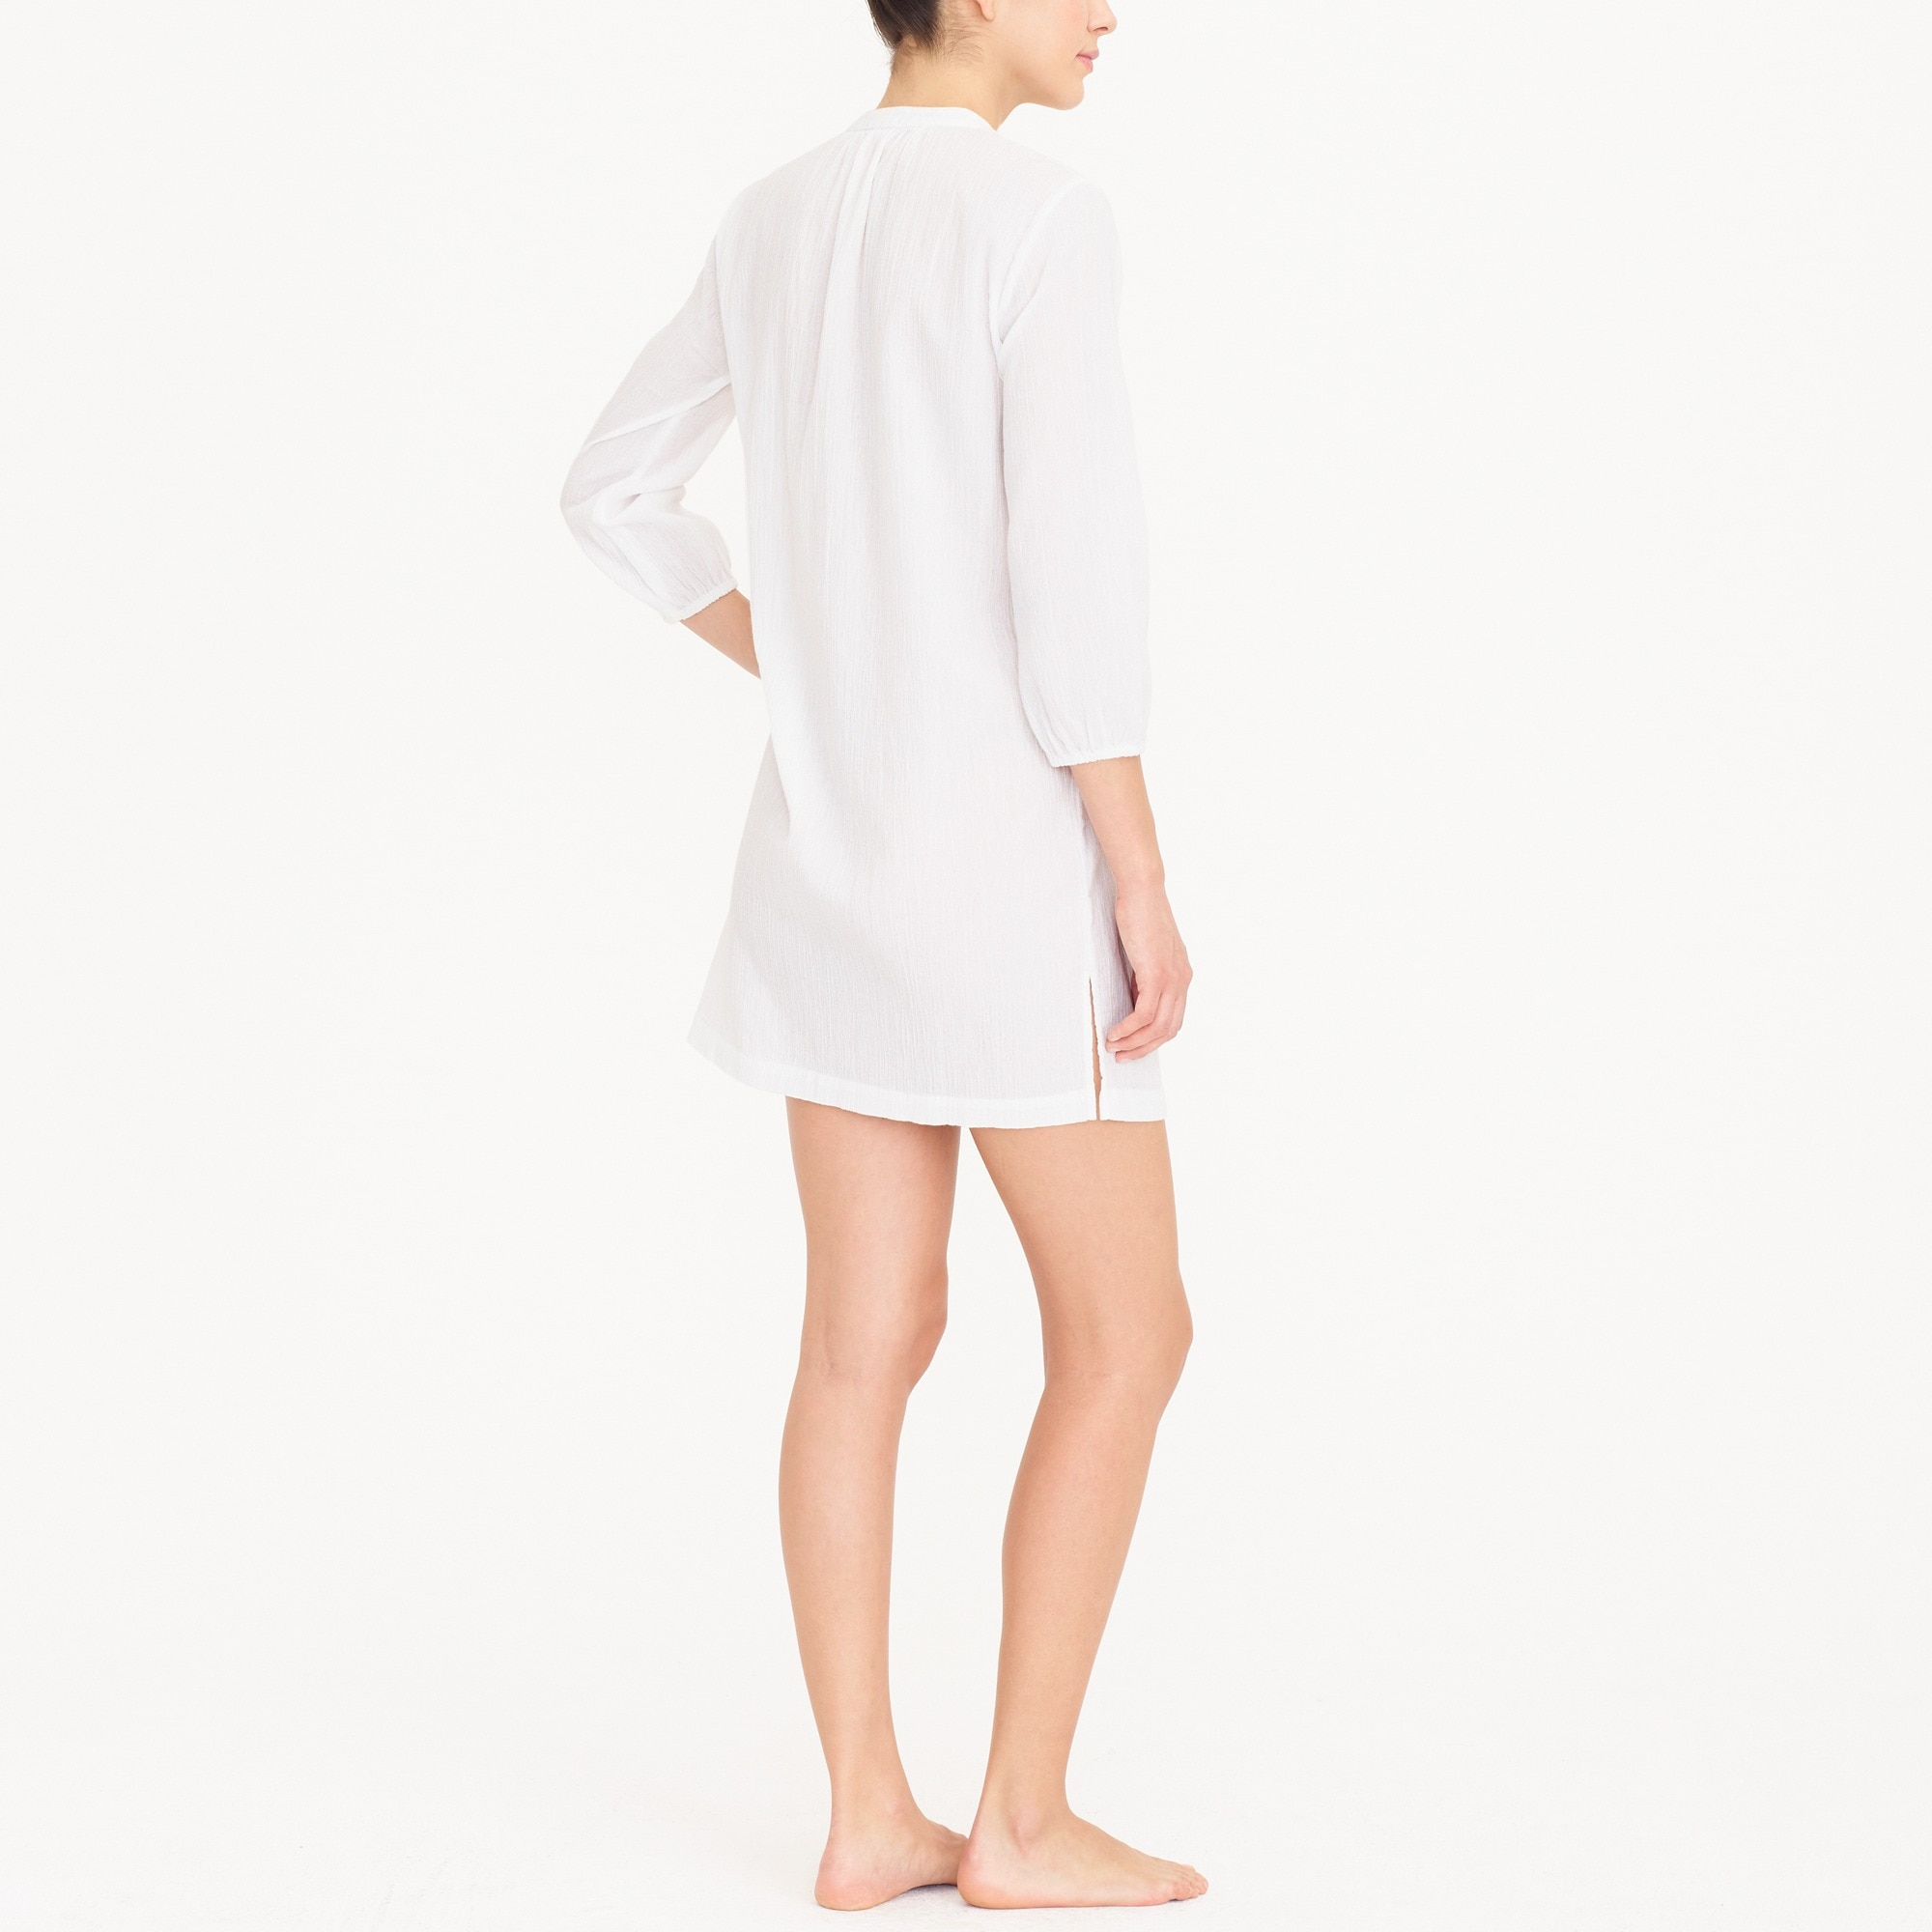 Pom-pom tunic cover-up